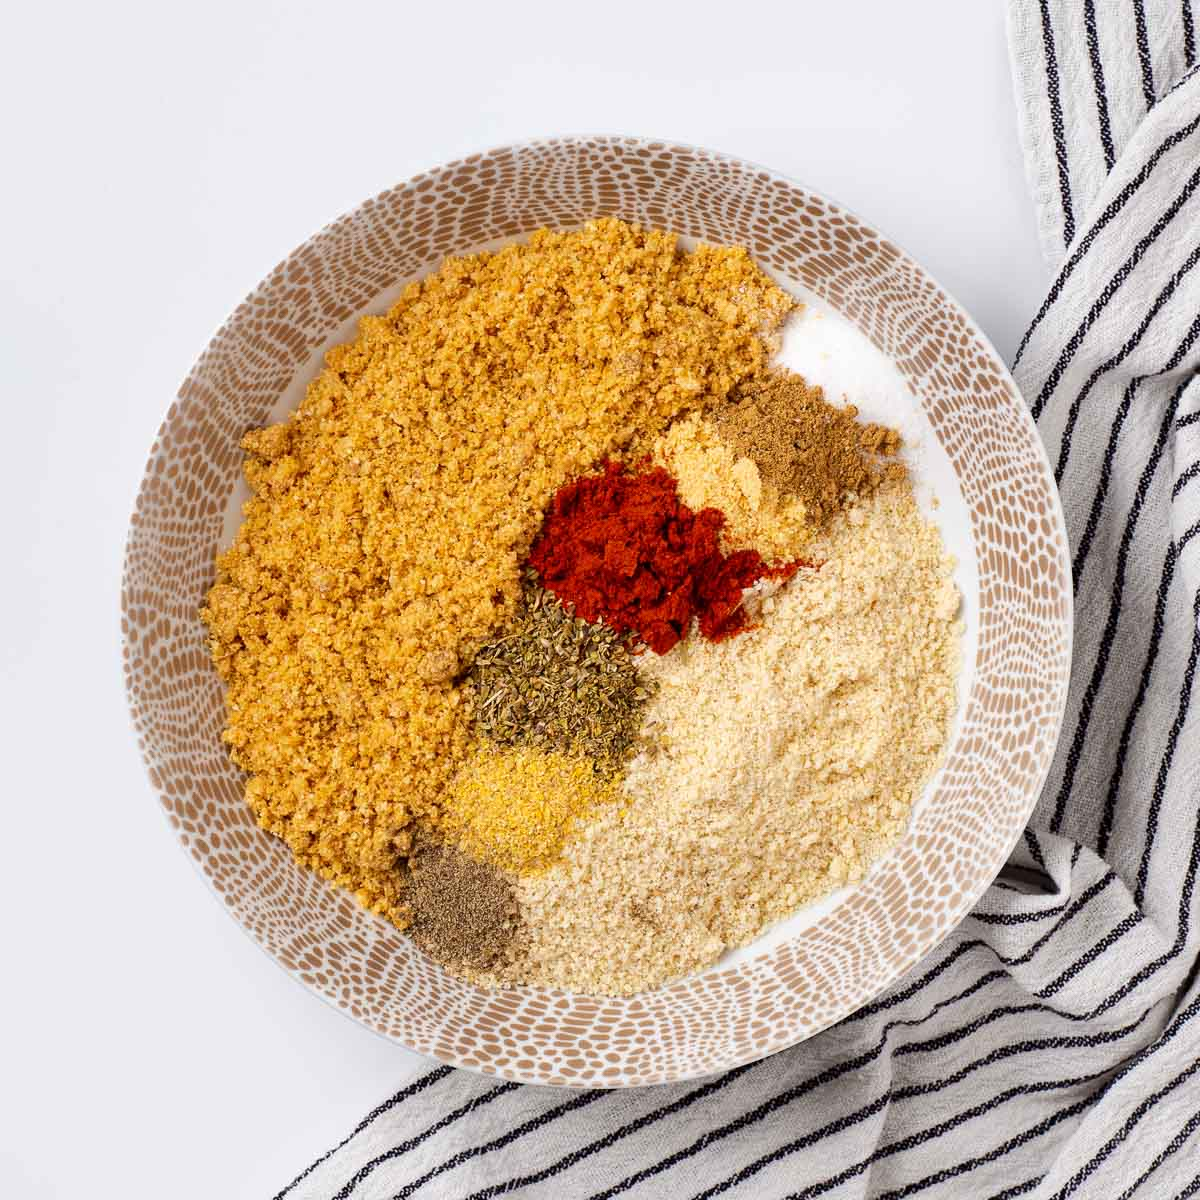 Spices & low carb breading in a bowl.